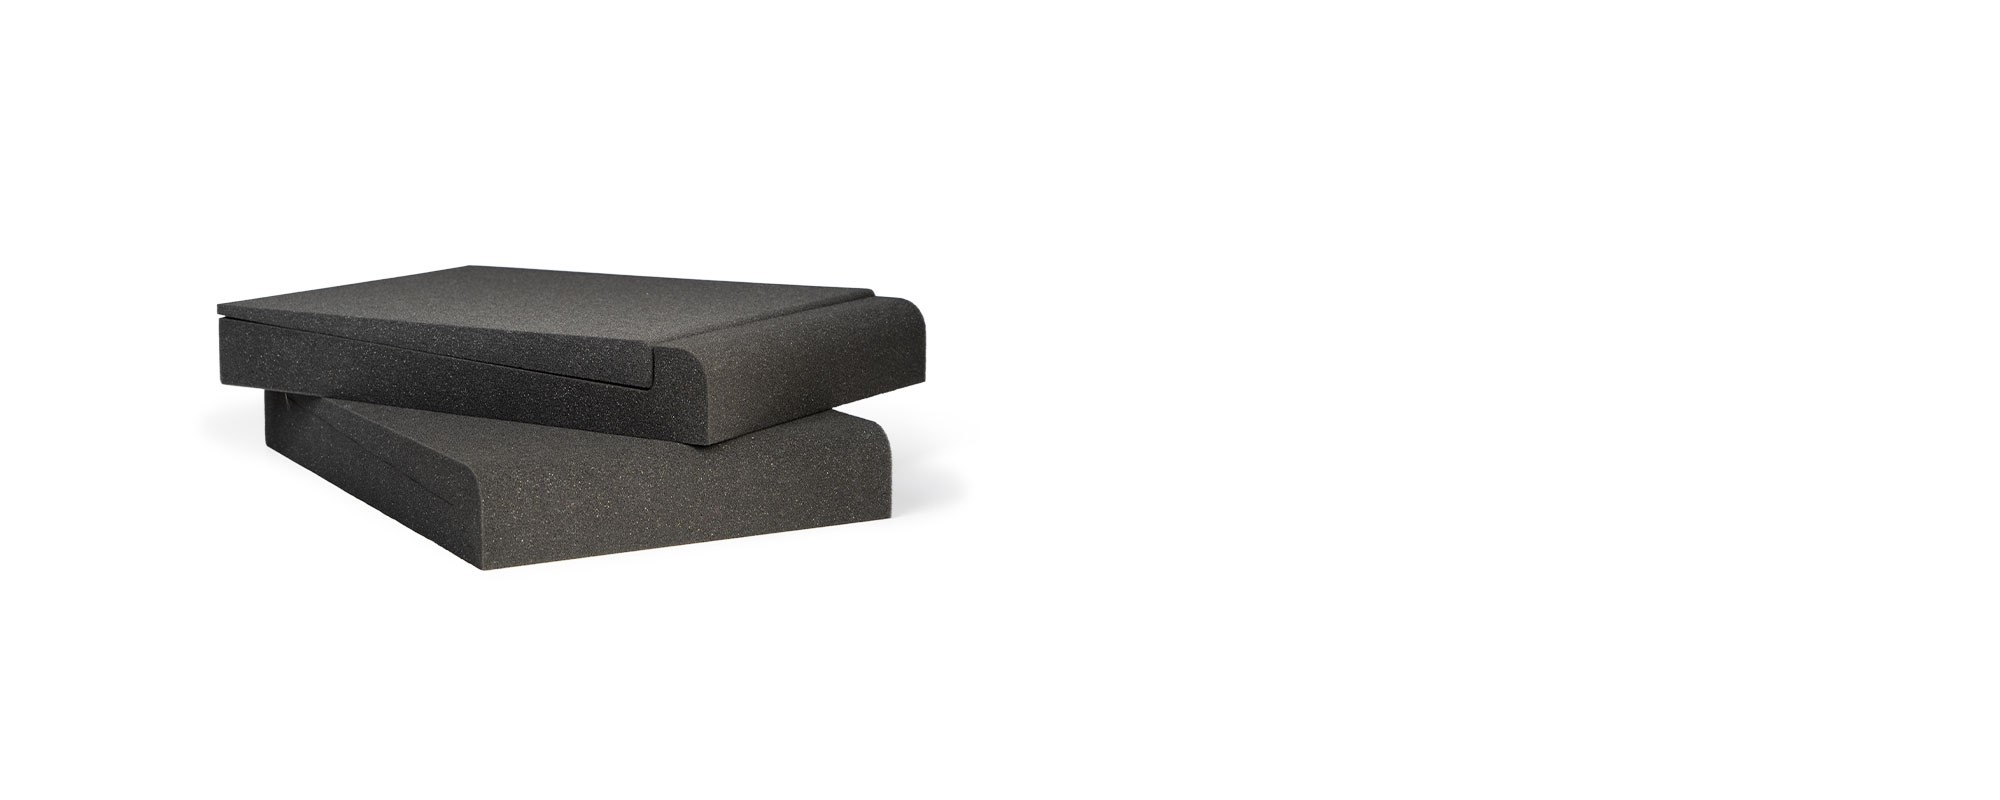 High Density Foam Speaker Isolation Pads - SP05 - left justified